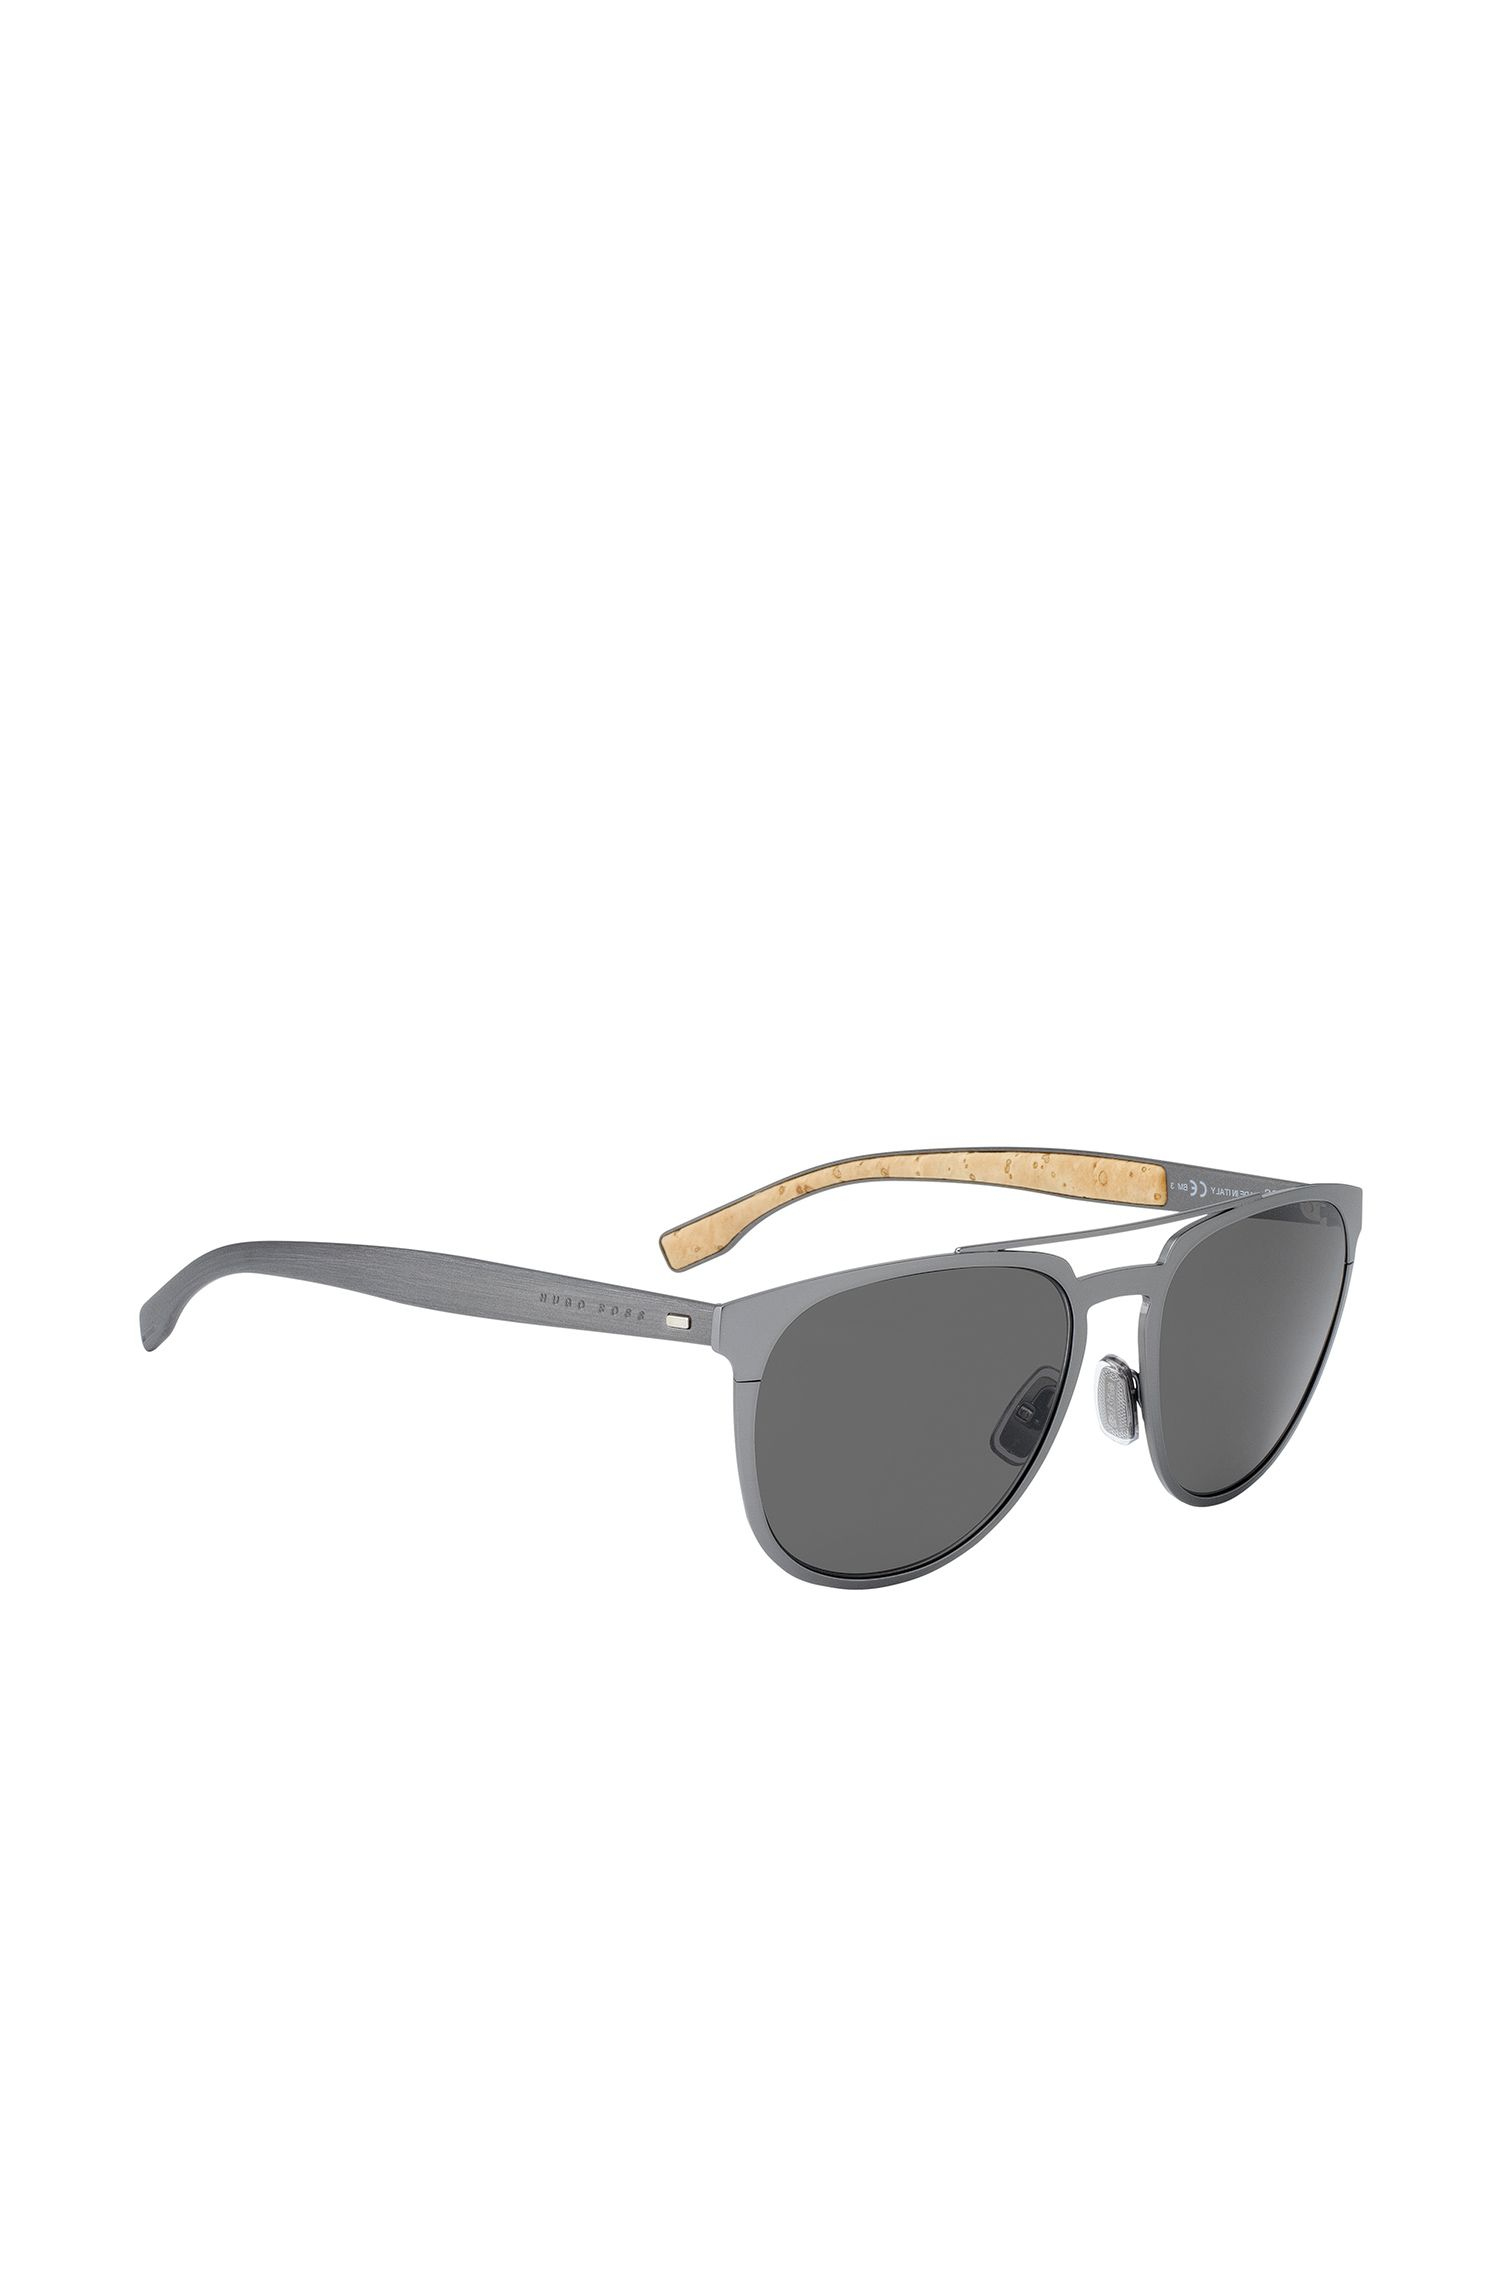 'BOSS 0882S' | Silver Round Metal Sunglasses